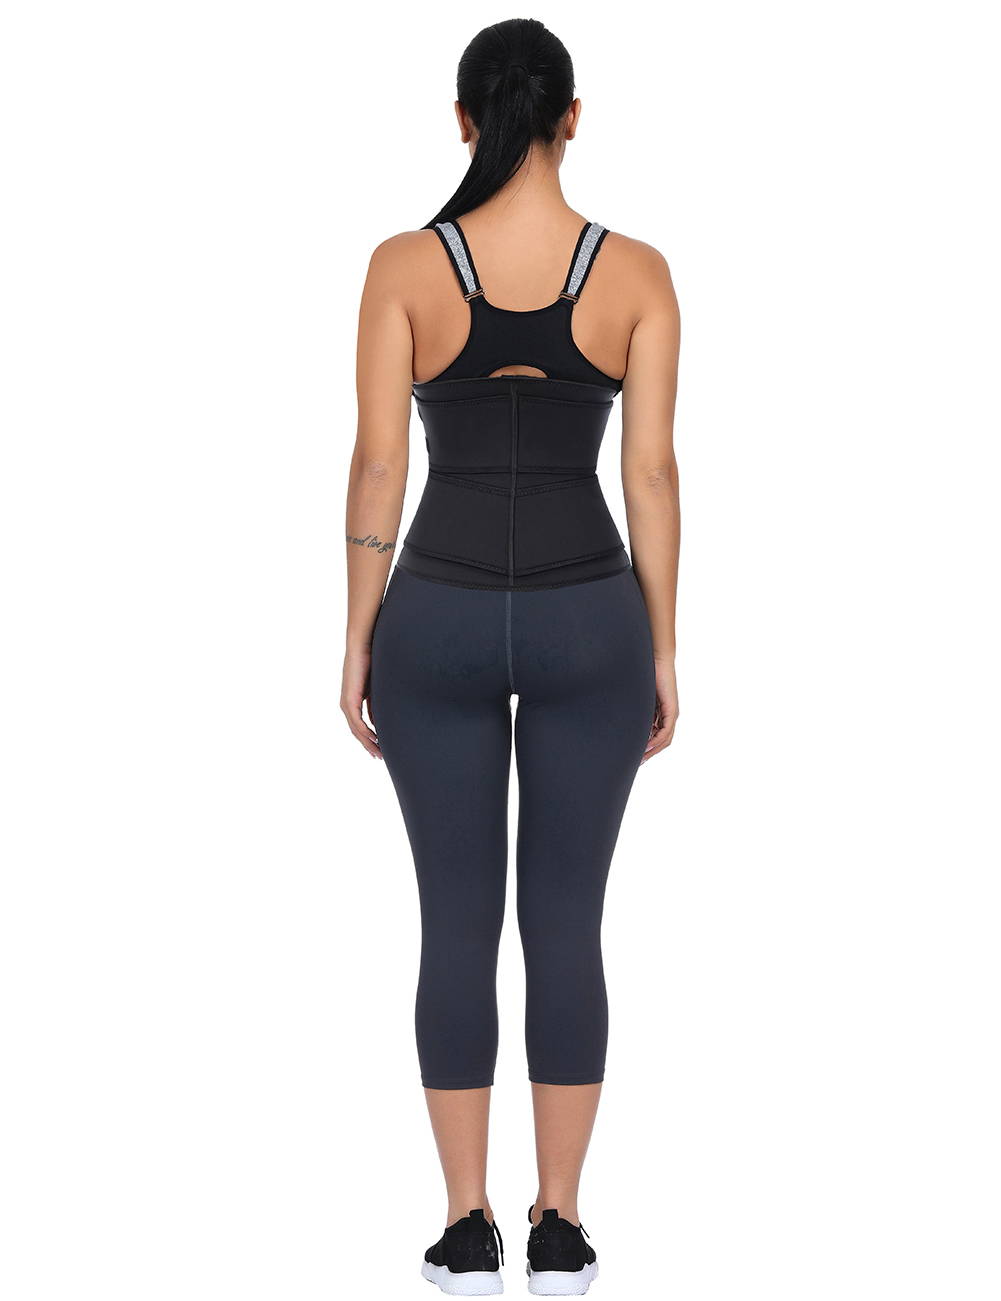 //cdn.affectcloud.com/hexinfashion/upload/imgs/Shaper/Waist_Trainer/B195054-BK1/B195054-BK1-201911065dc23a0da3490.jpg